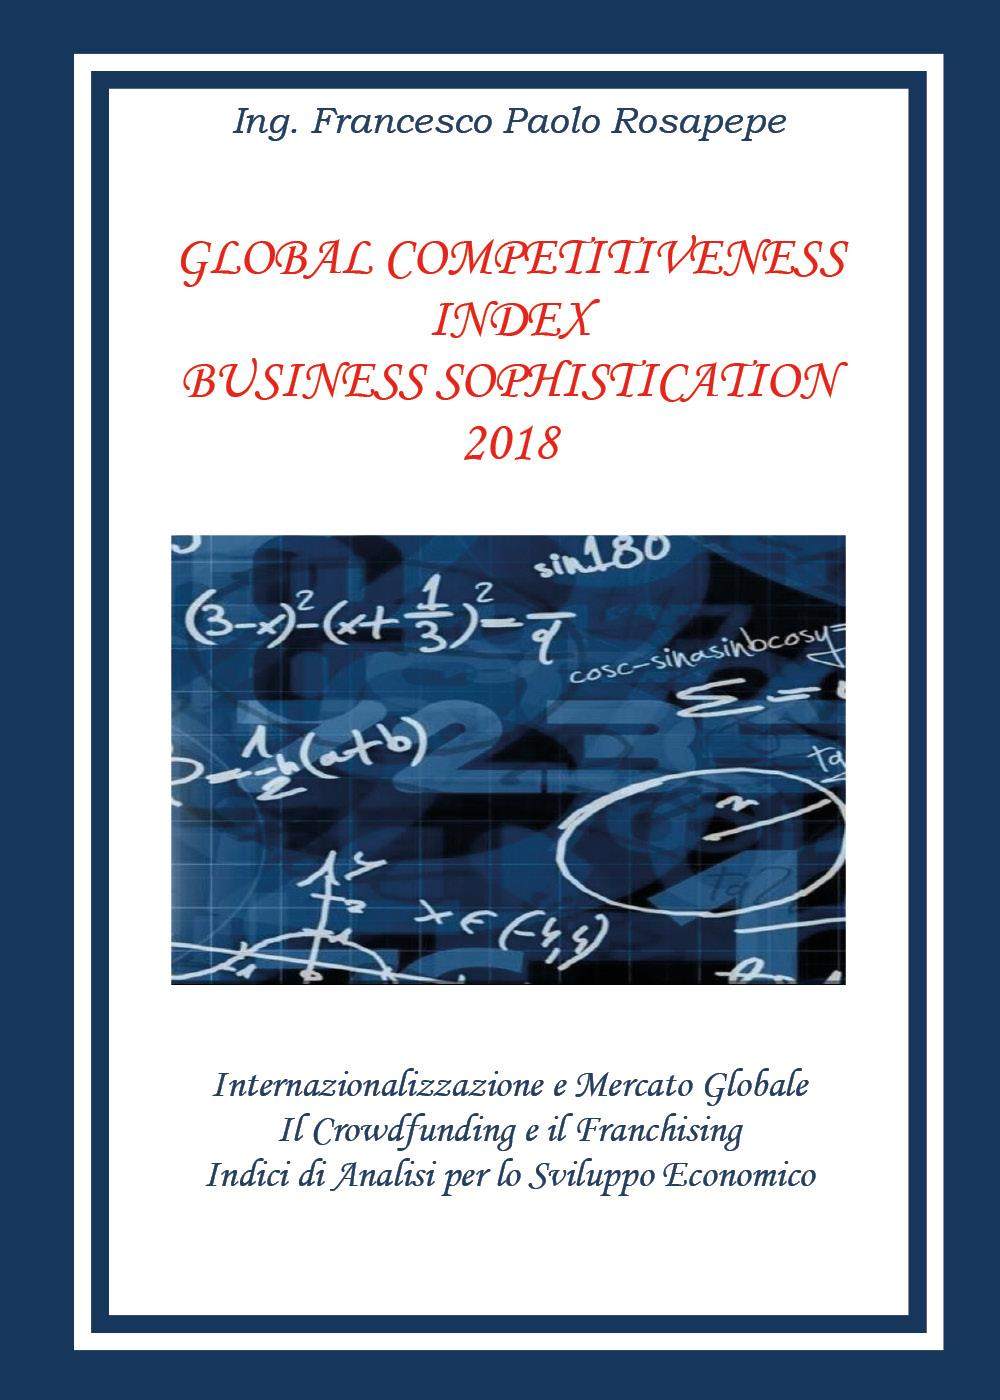 Global competitiveness index business sophistication